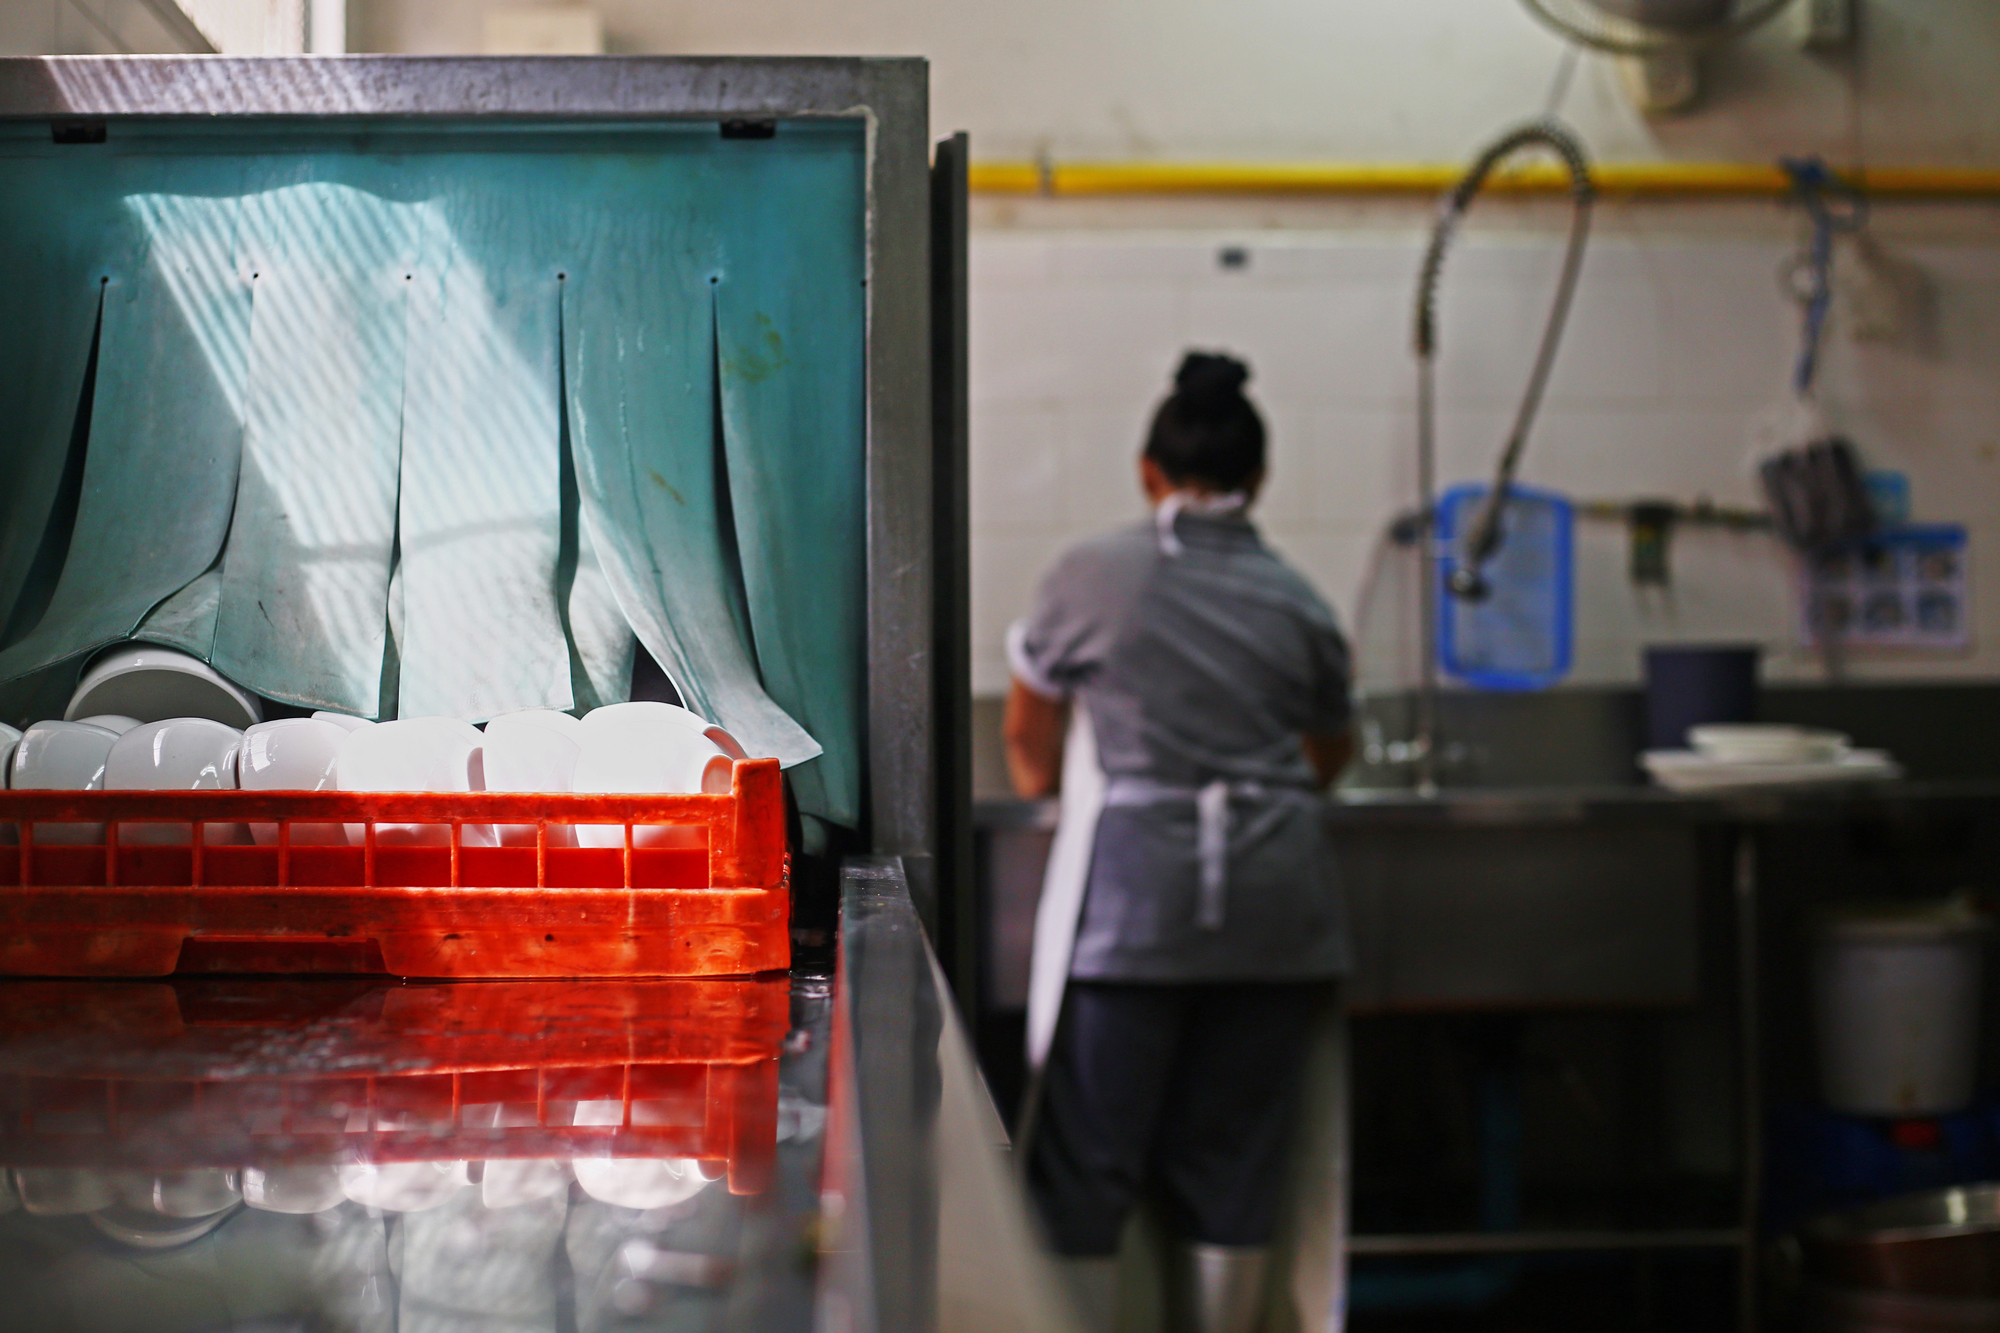 Restaurant worker washing dishes in a commercial kitchen